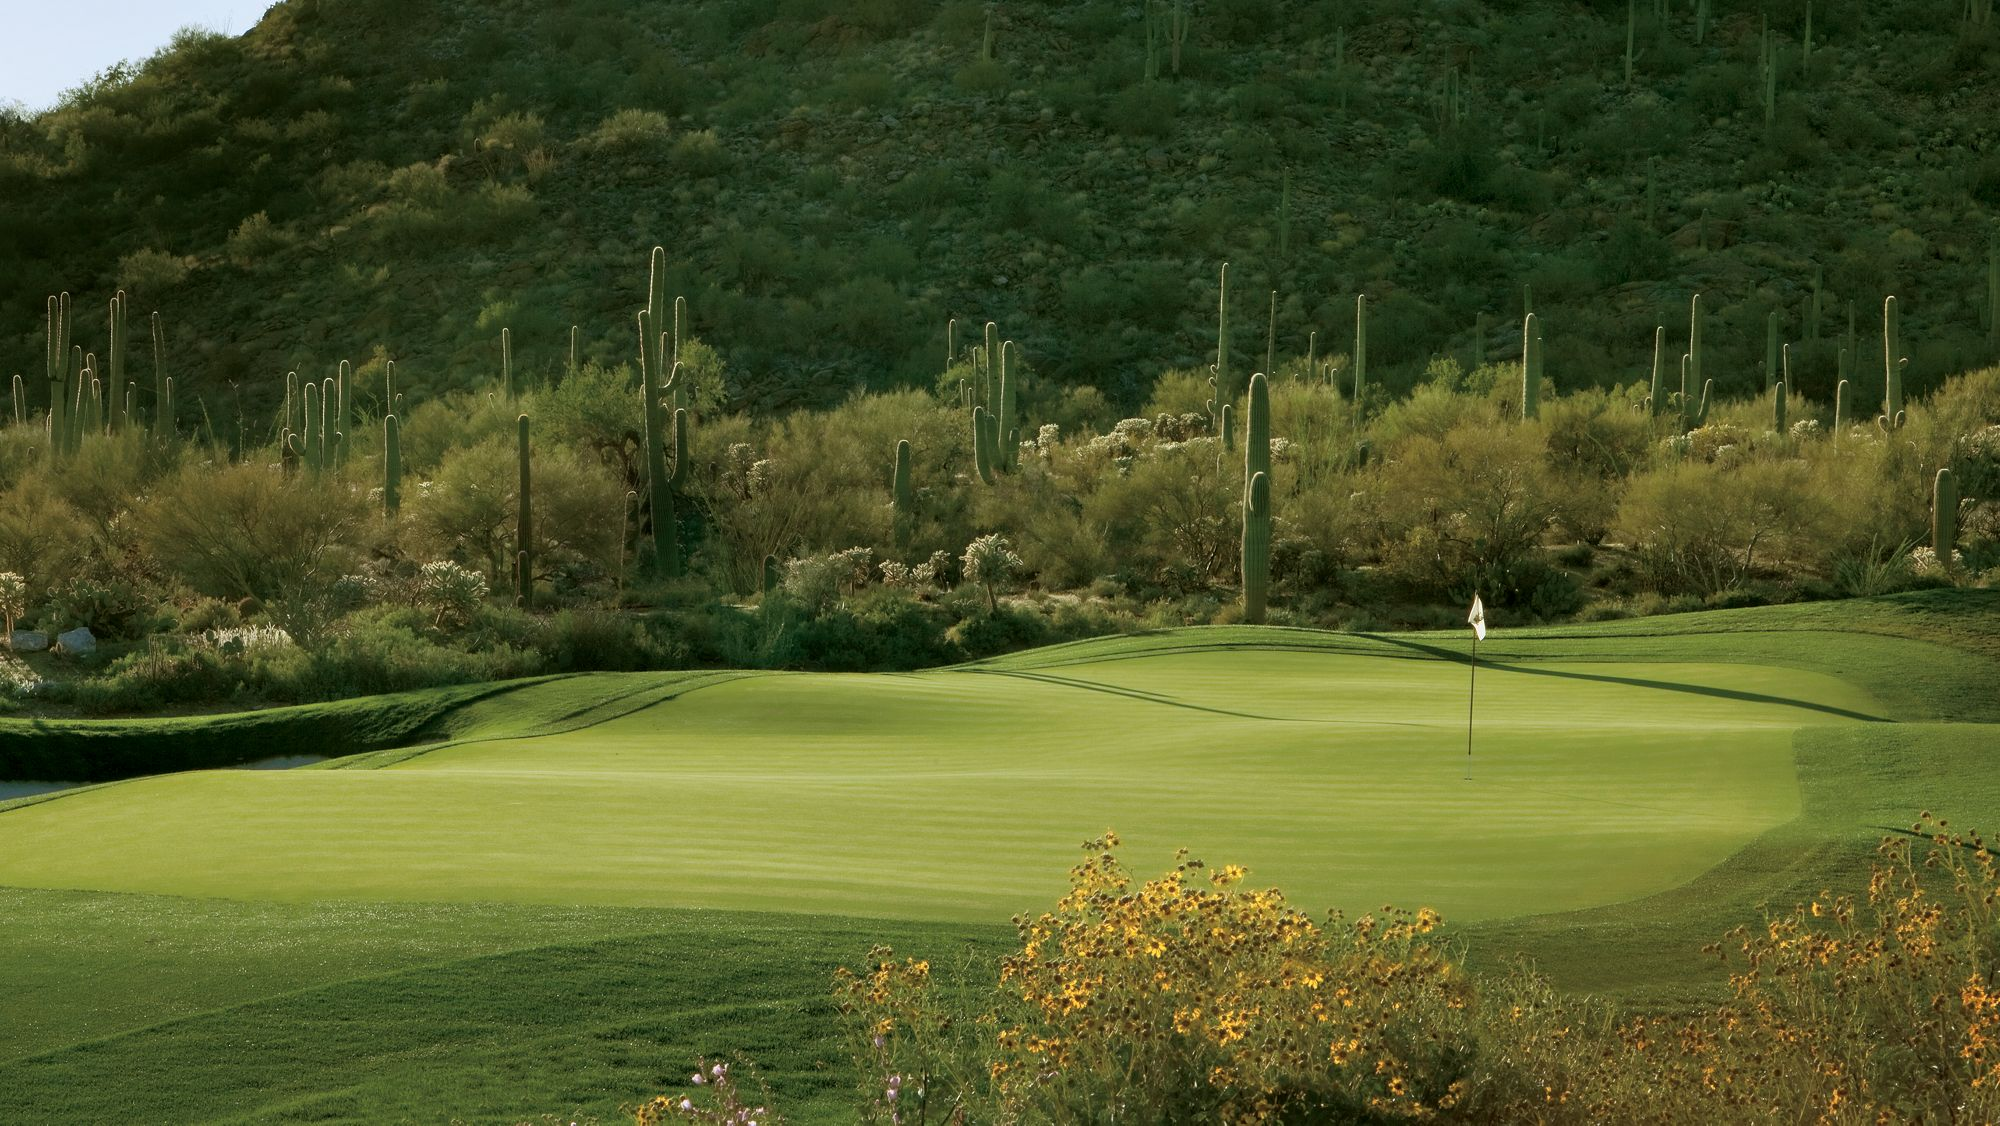 A golf course overlooked by cacti and mountains